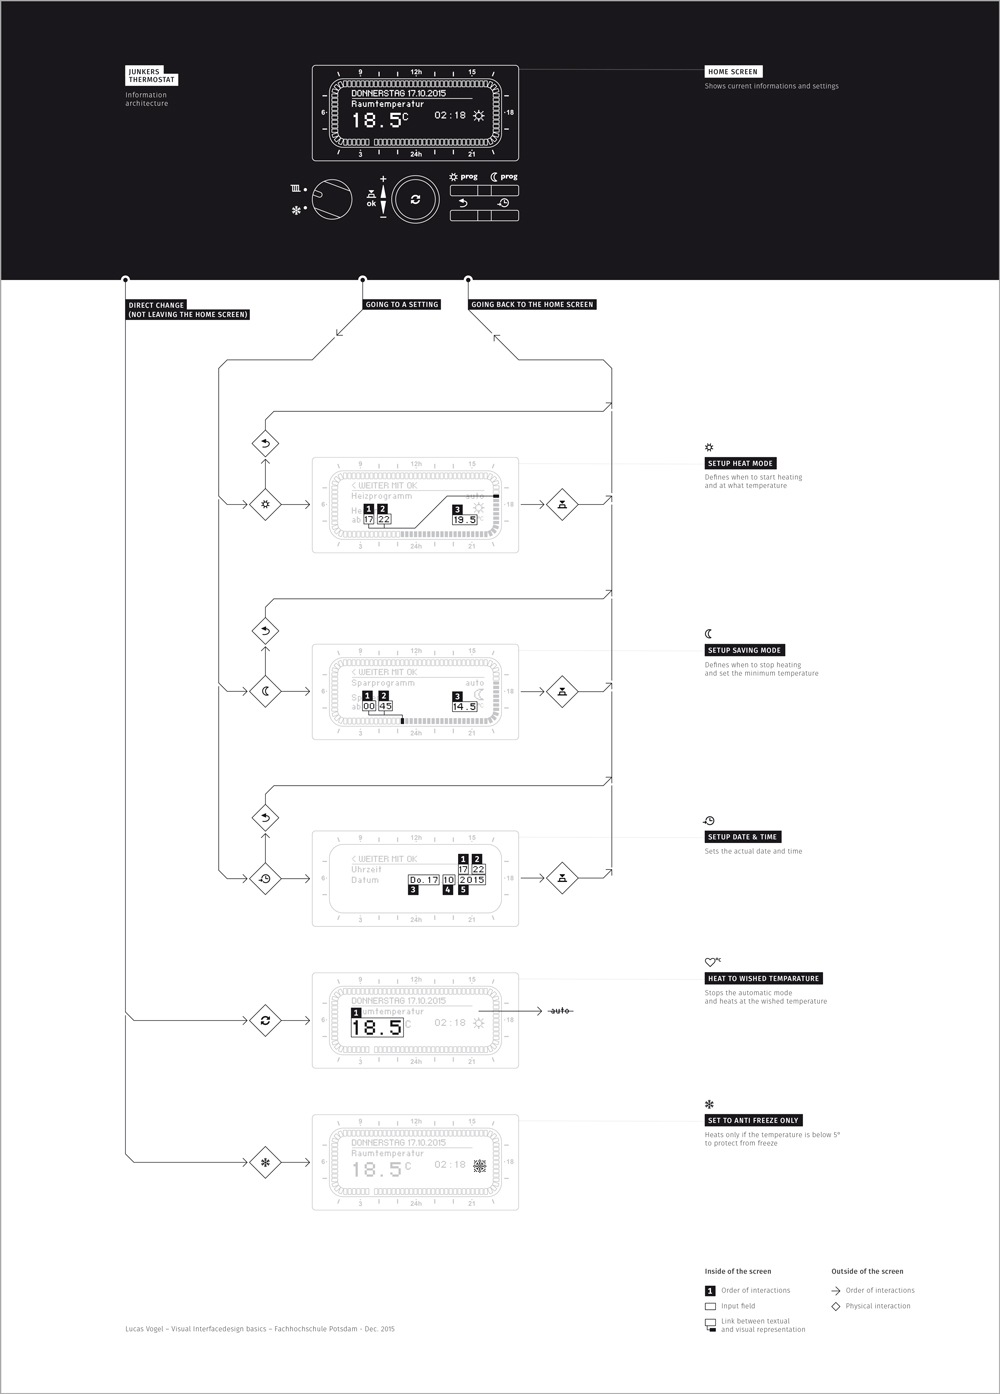 Junkers thermostat - information architecture